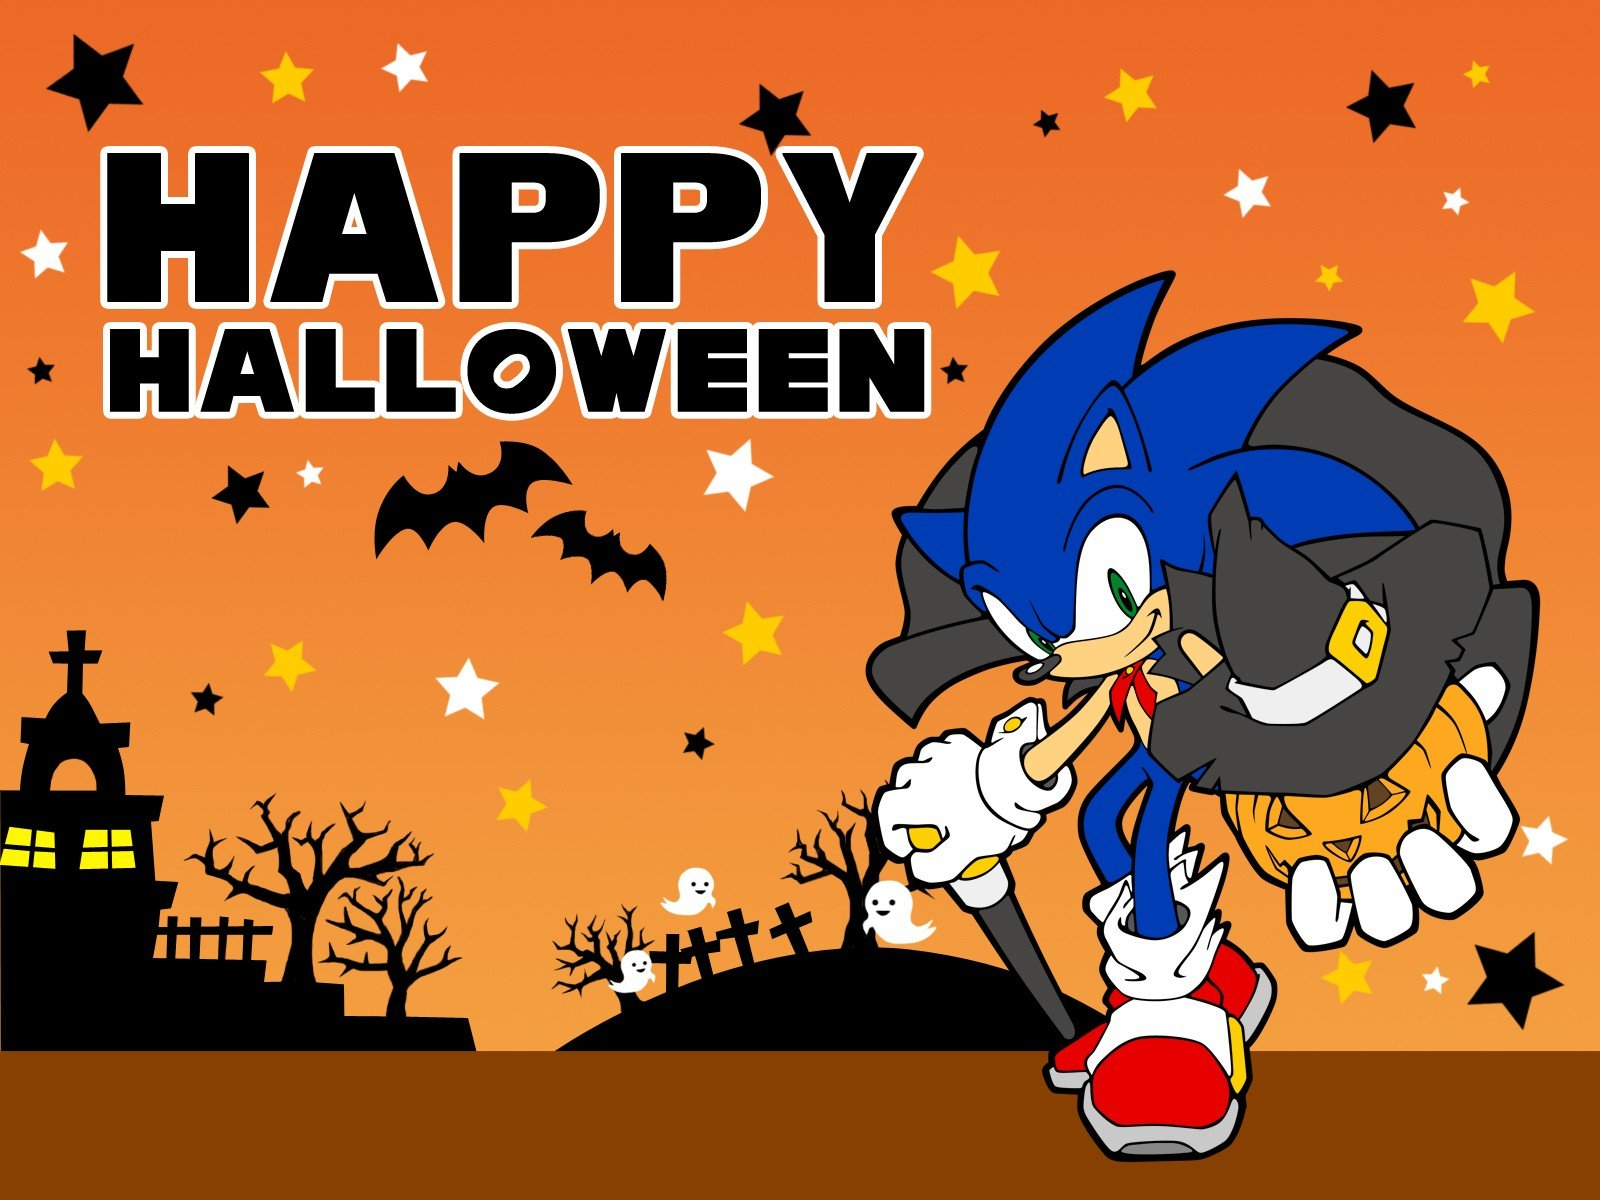 Sonic Wallpaper Hd 3d Halloween Sonic The Hedgehog Hd Wallpapers Desktop And